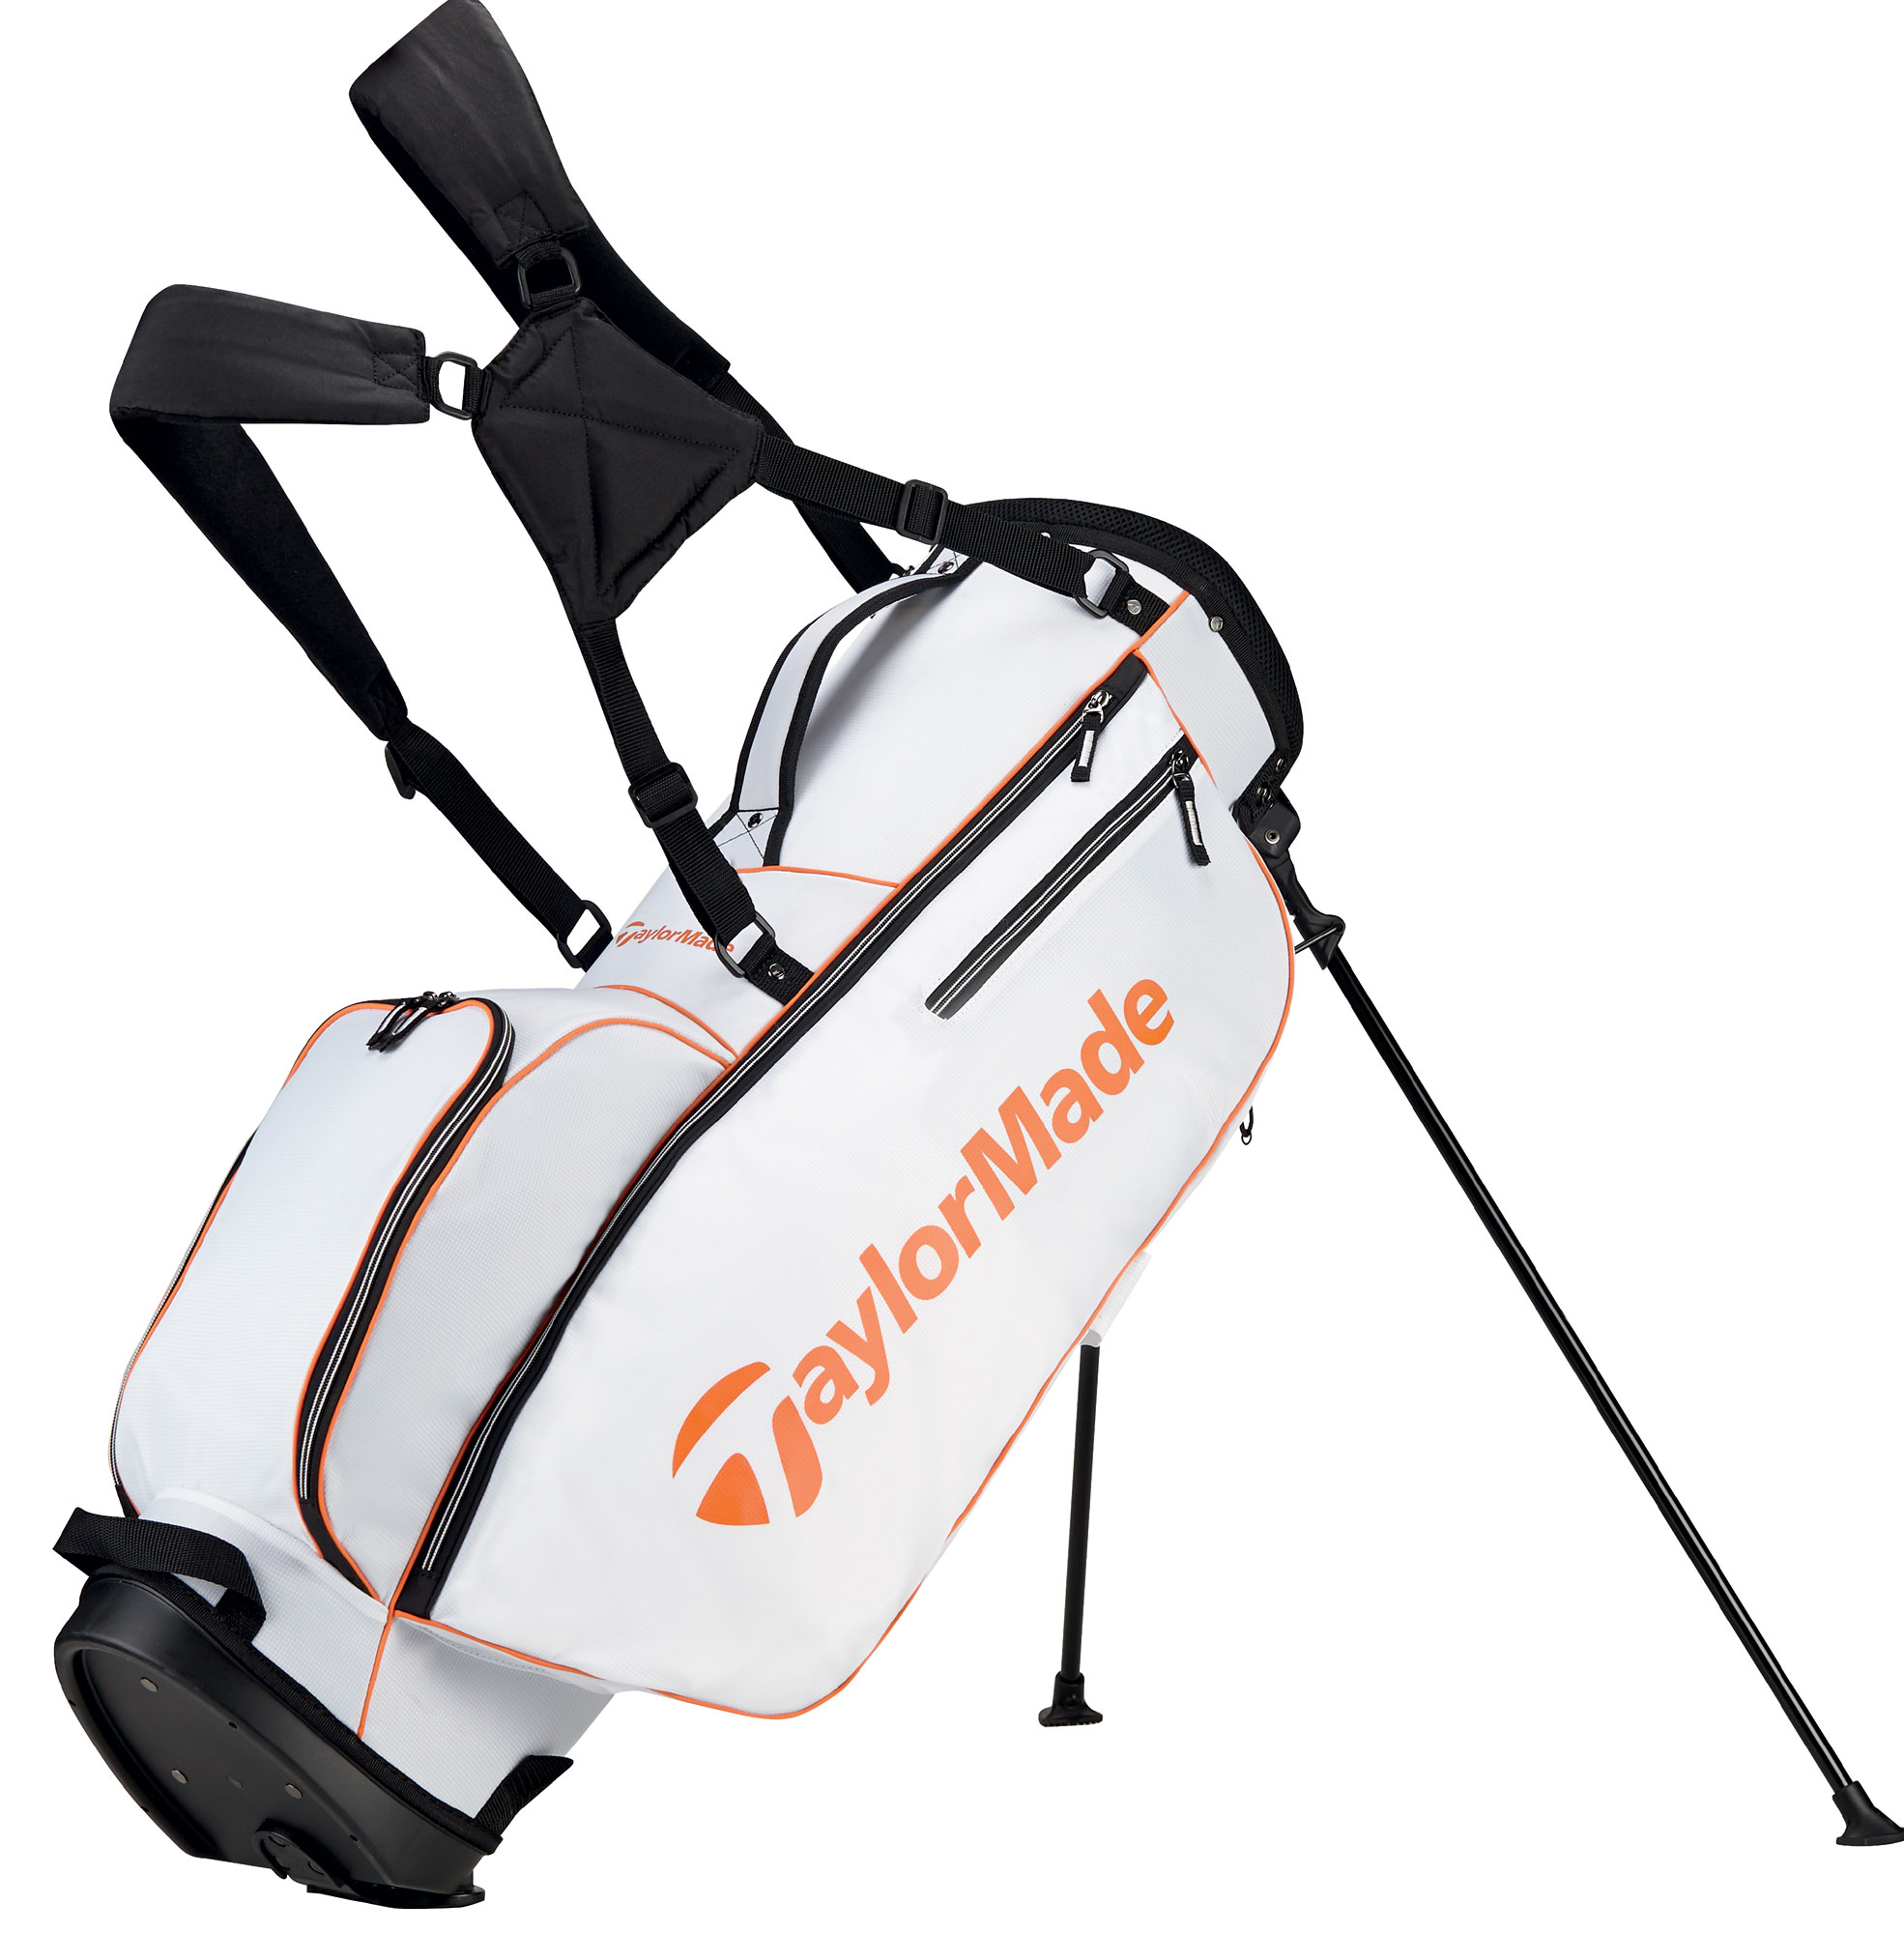 Taylormade Tm 5 0 Golf Stand Bag New Choose Color Ebay